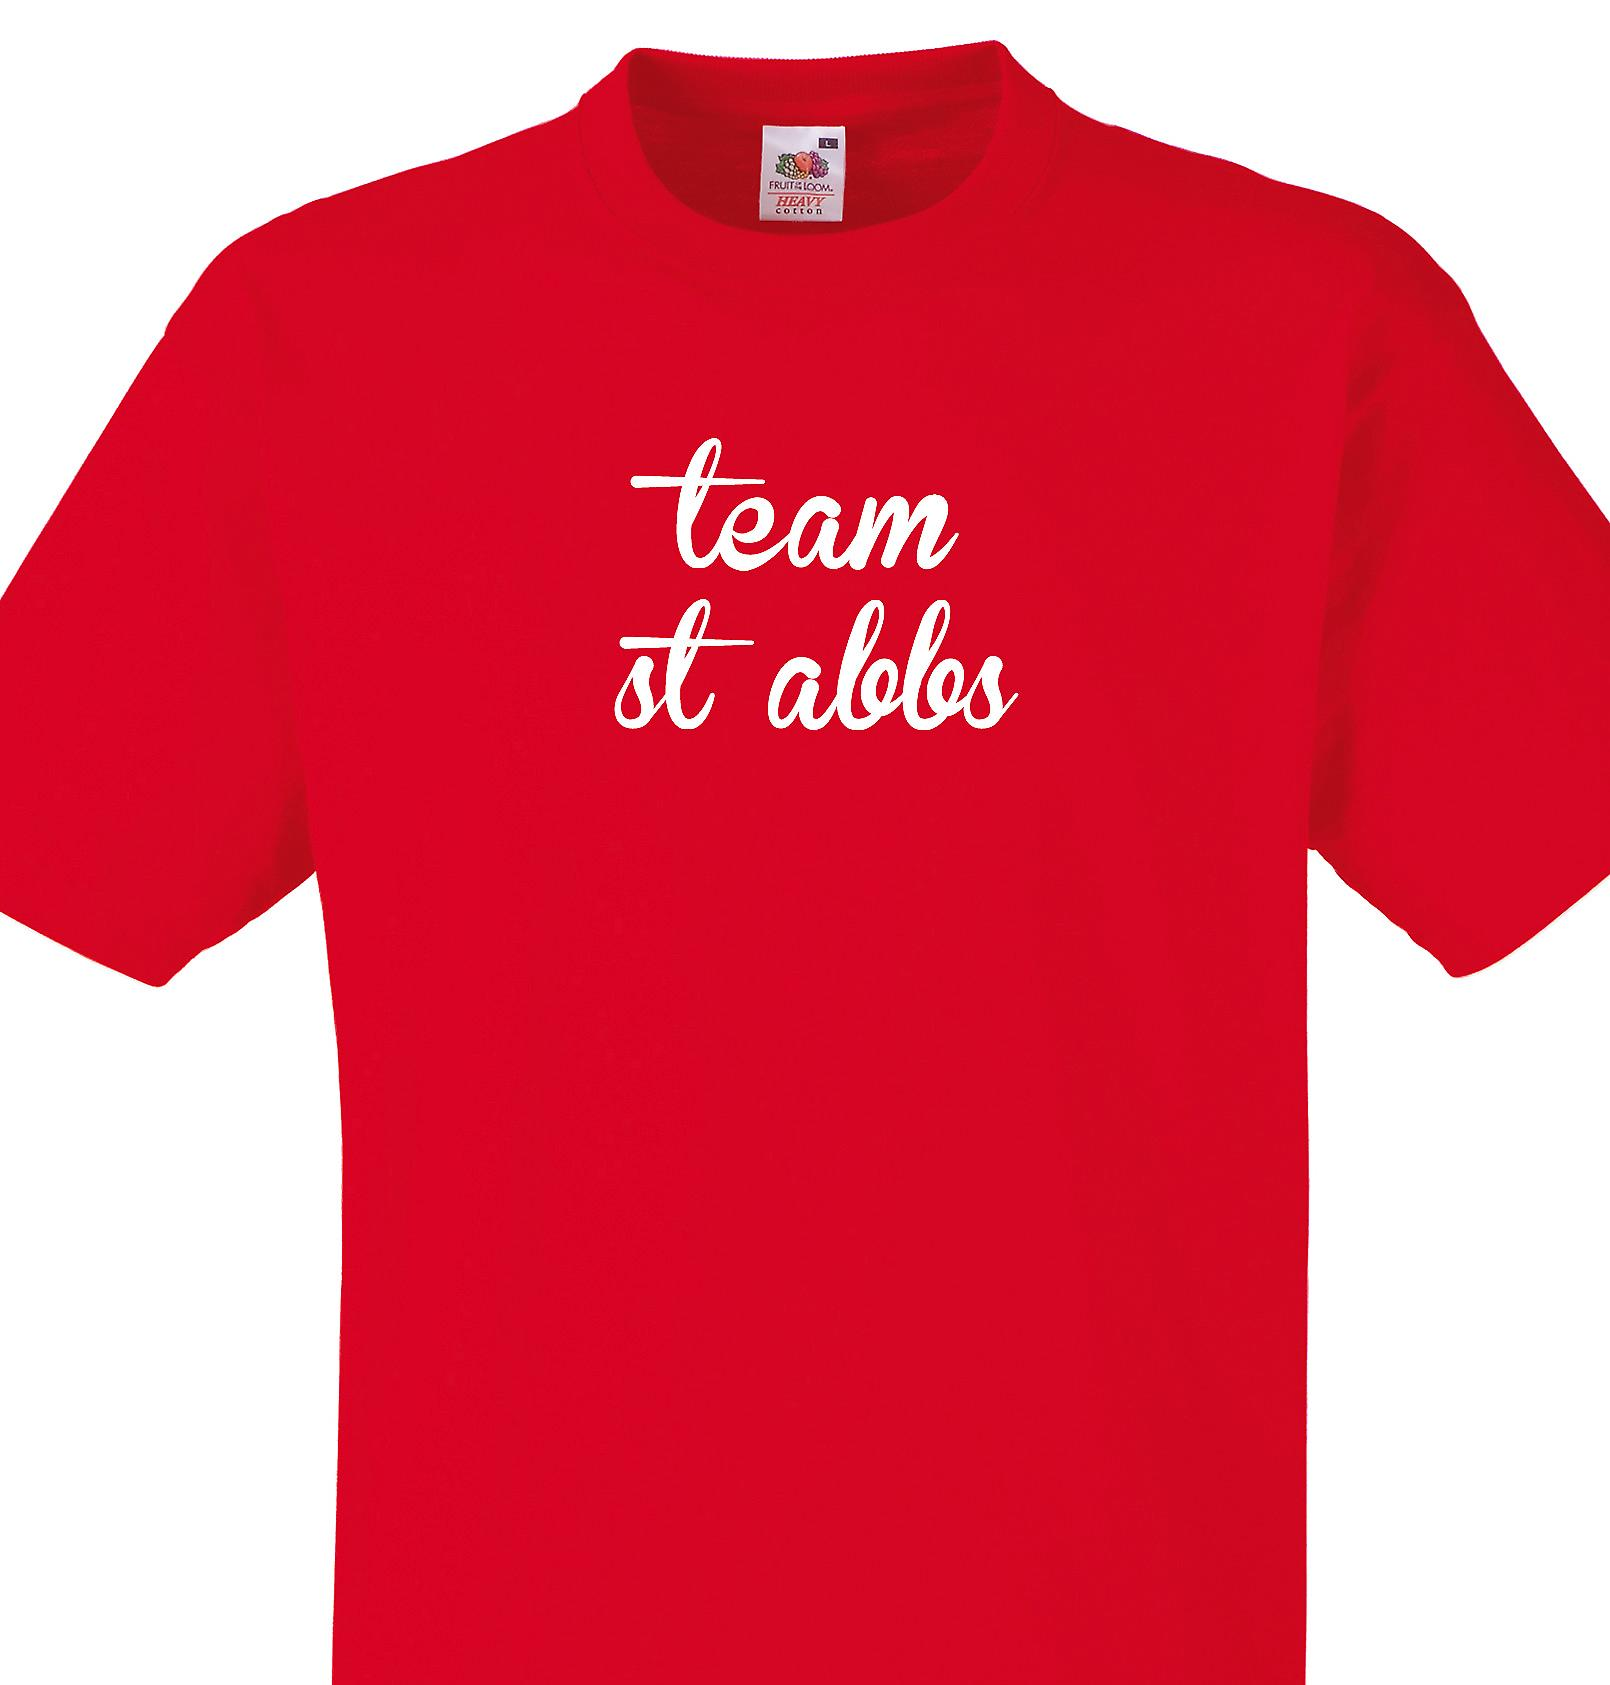 Team St abbs Red T shirt